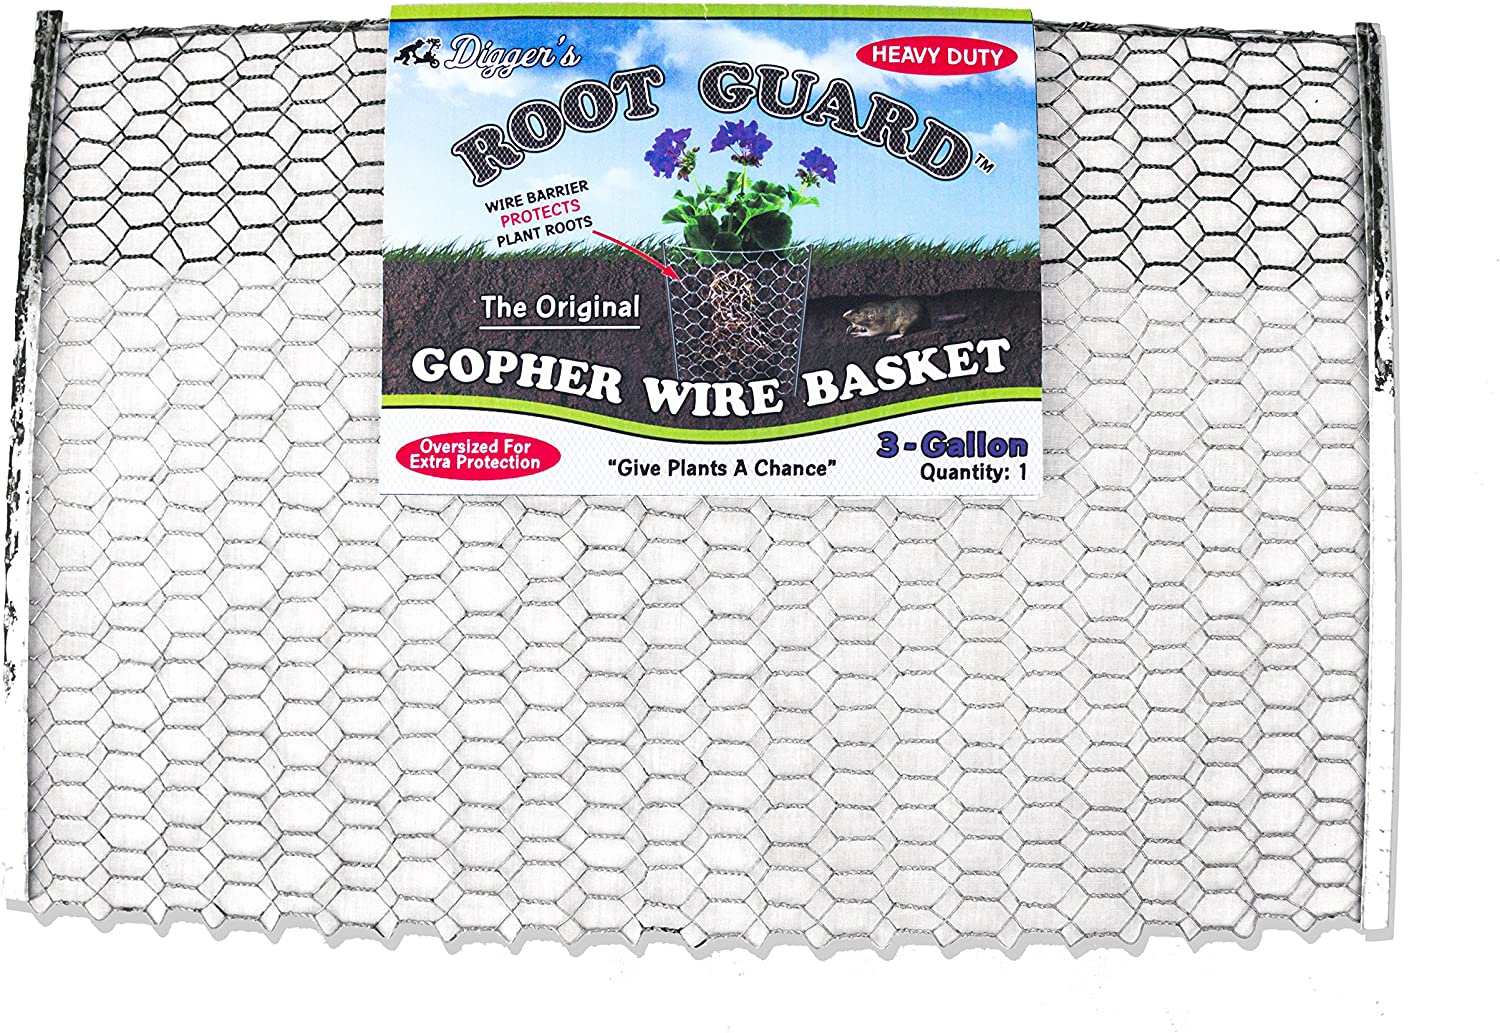 12 QTY Digger's RootGuardTM 3-Gallon Heavy Duty Gopher Wire Baskets